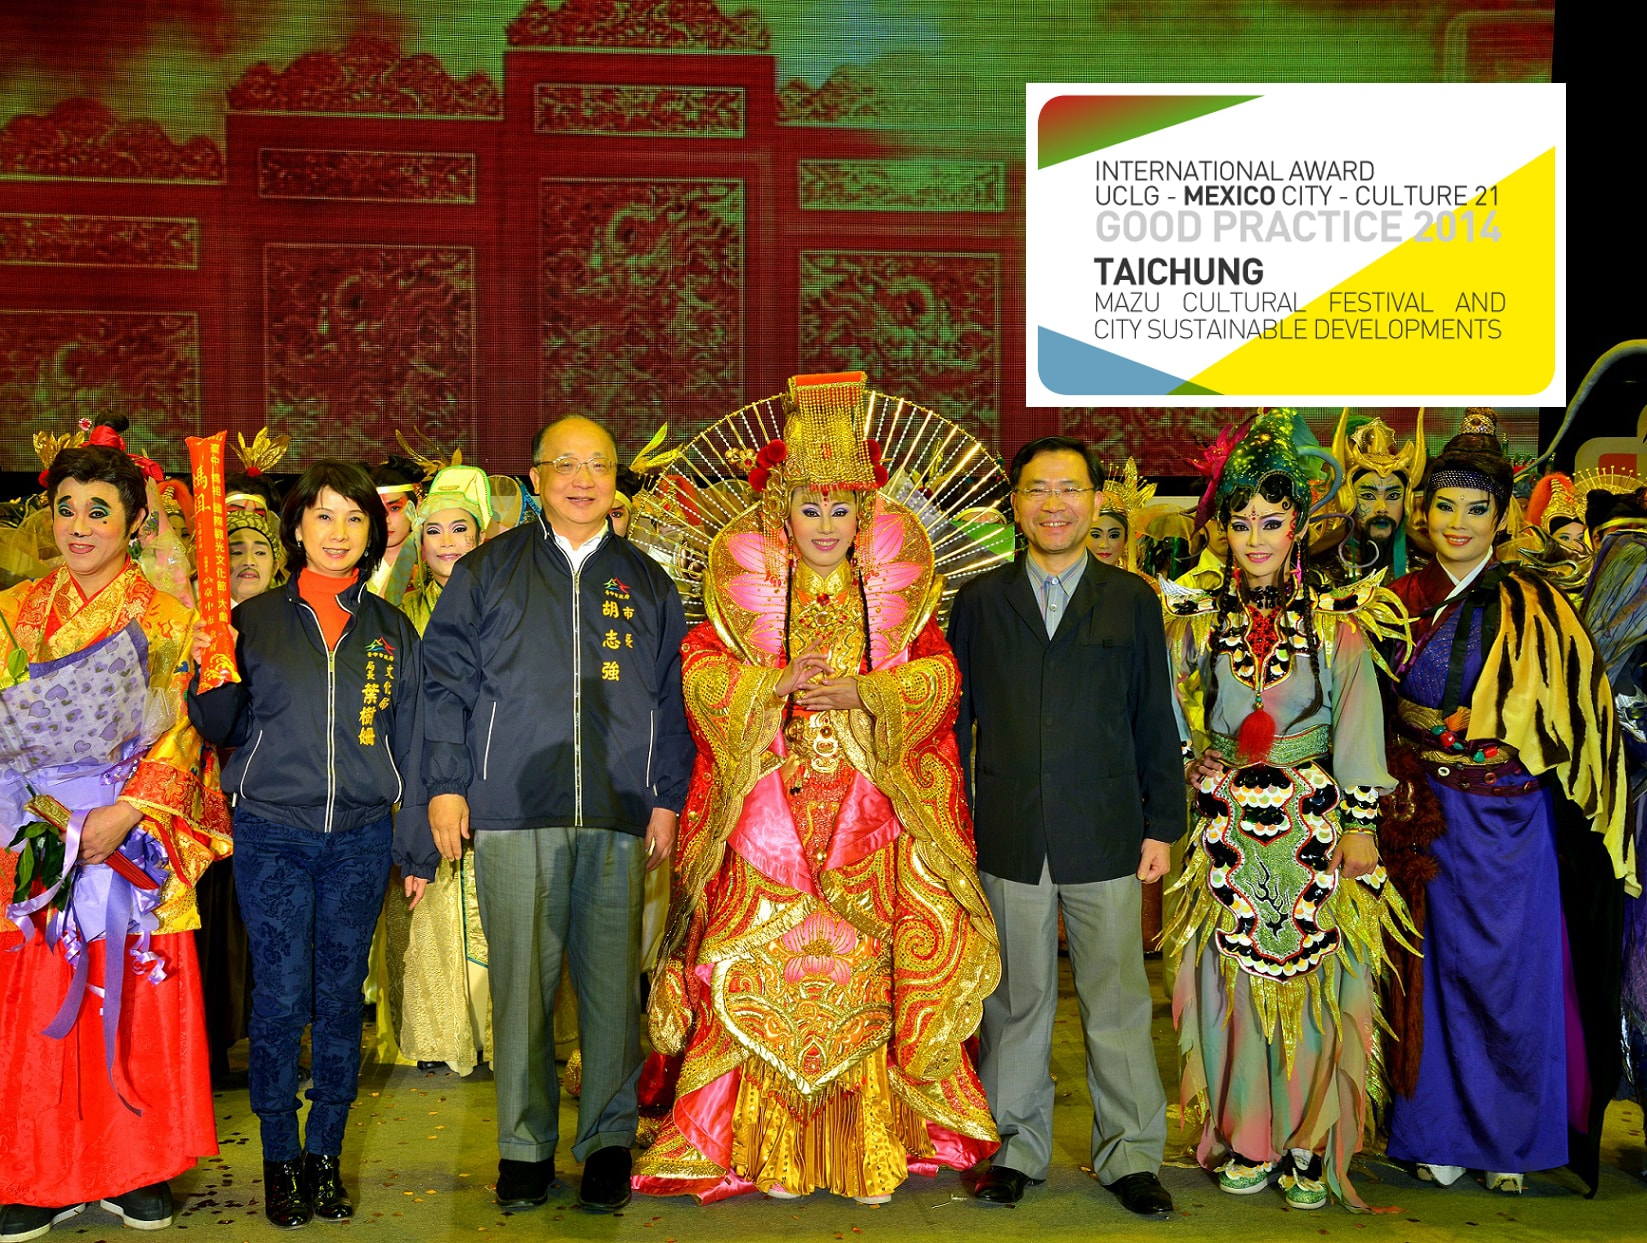 Mazu cultural festival and city sustainable development in Taichung